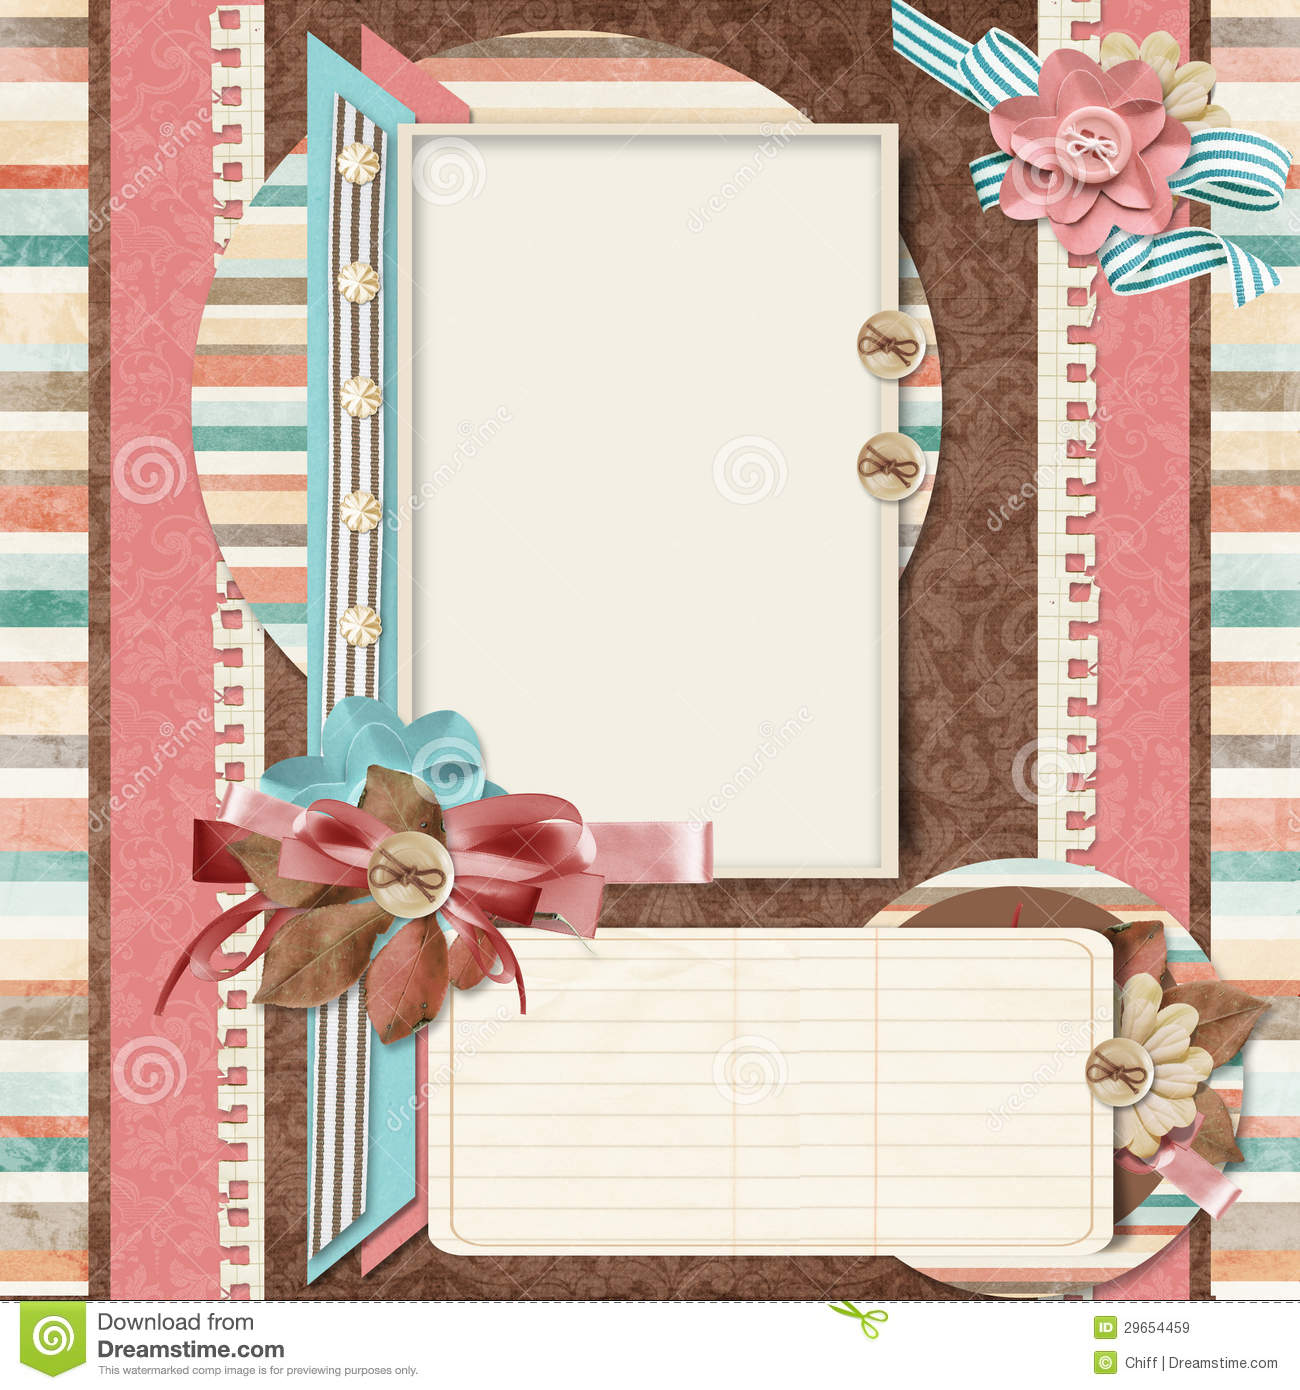 retro family album project scrapbooking templates royalty retro family album 365 project scrapbooking templates